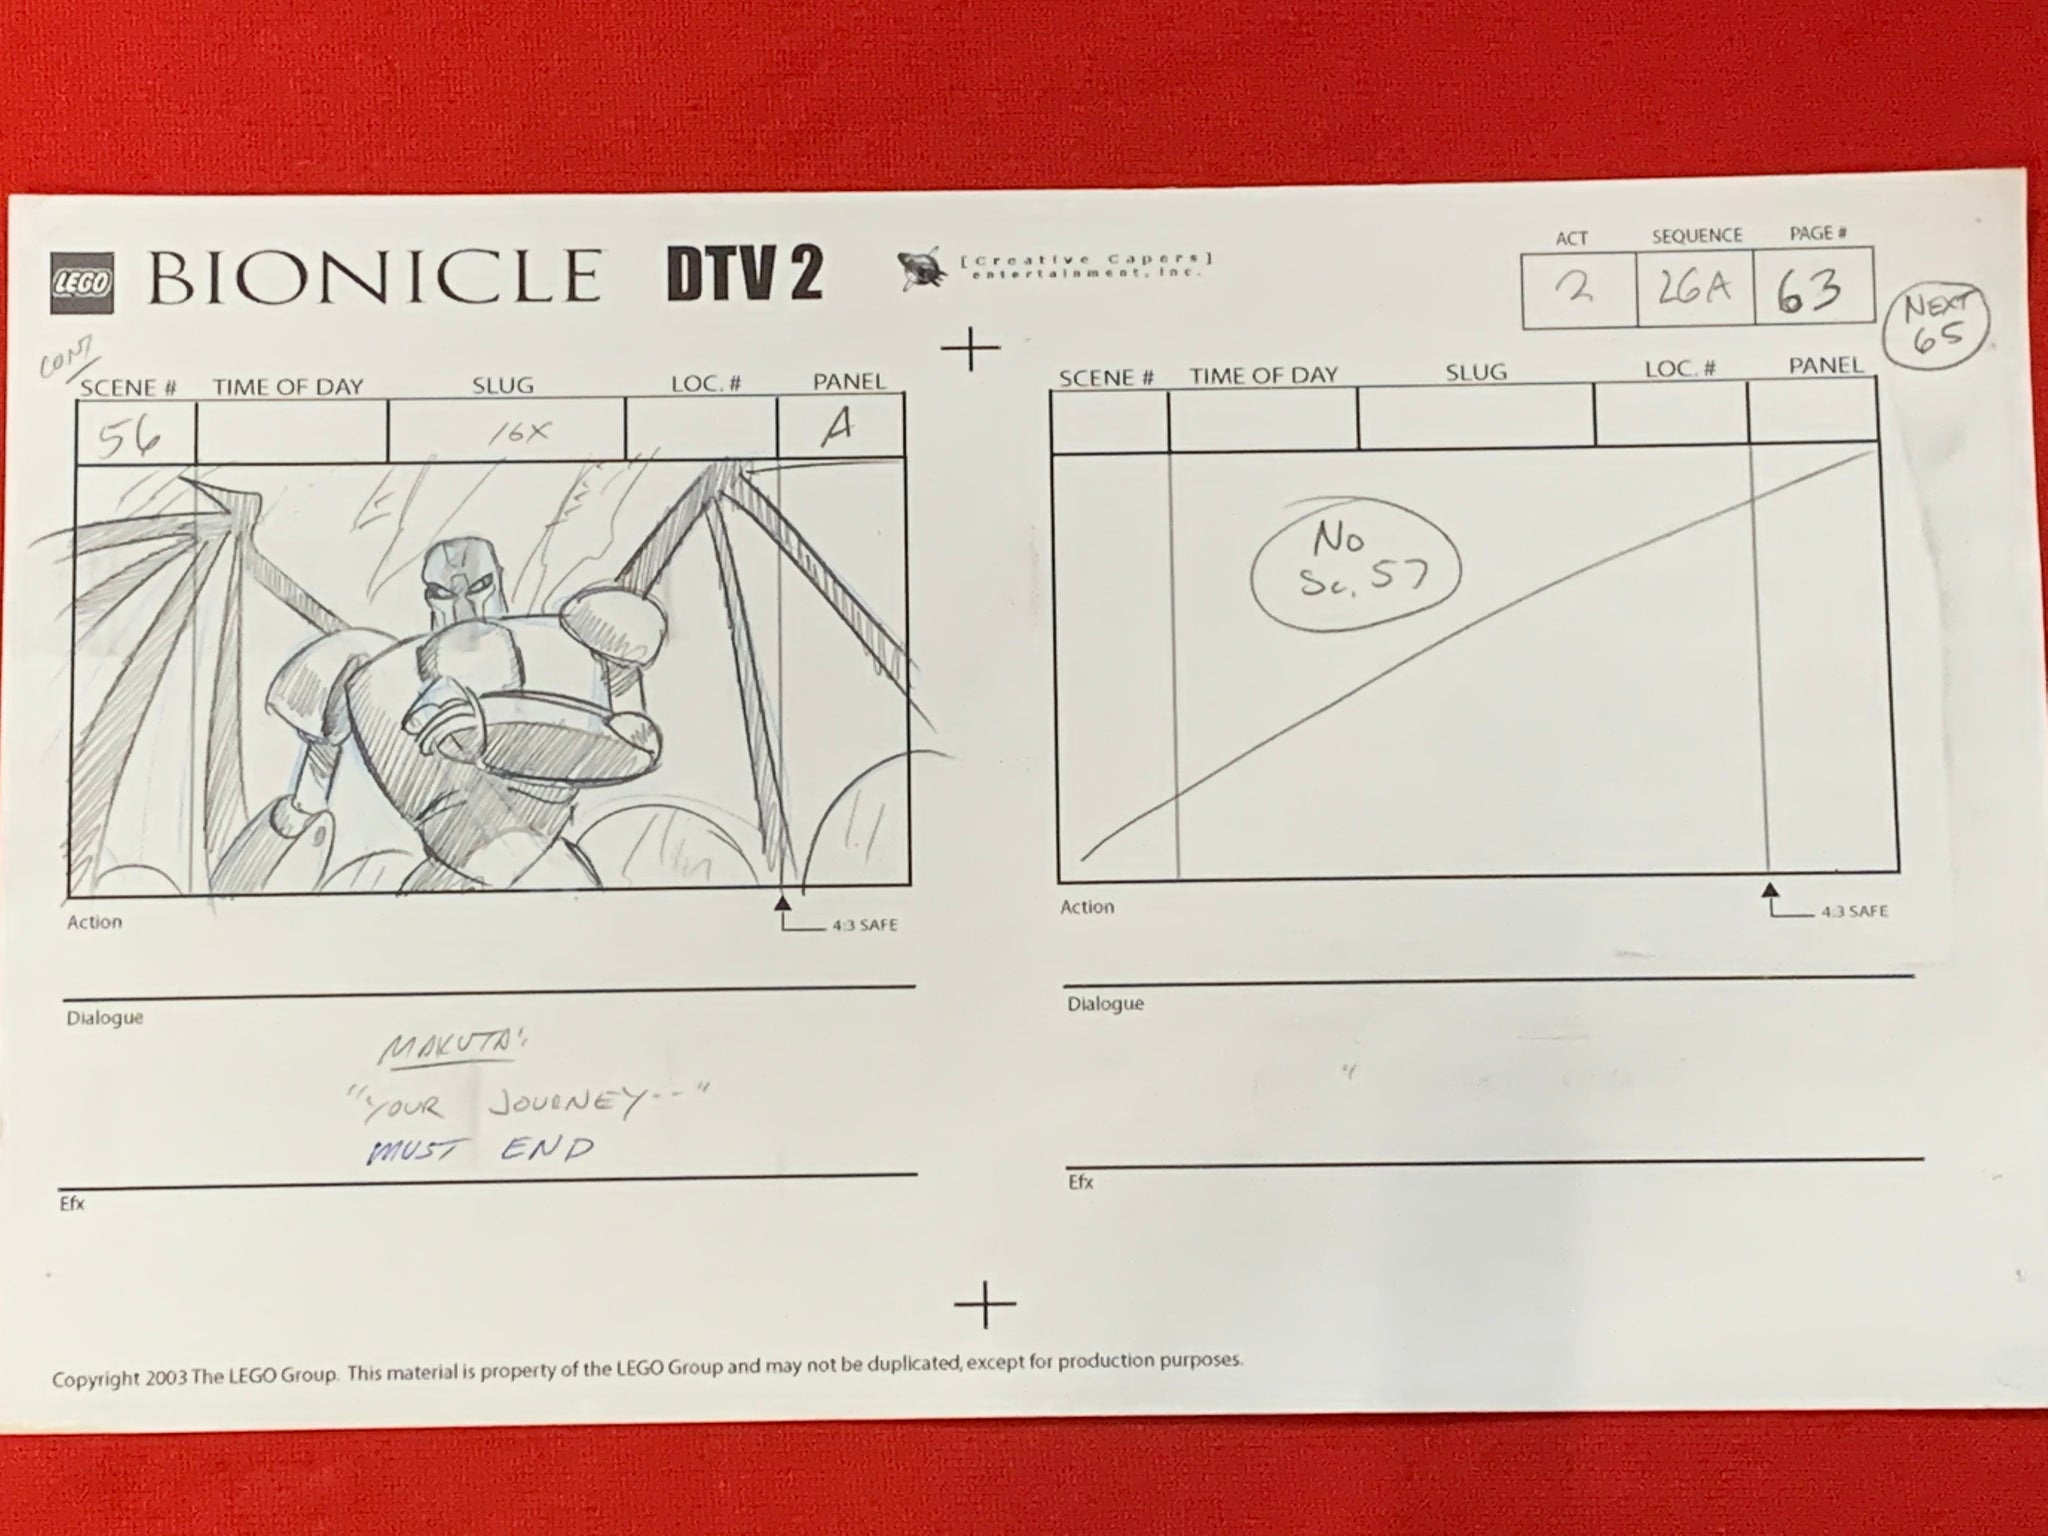 Lego Bionicle storyboard 3 EX0879 - Animation Legends